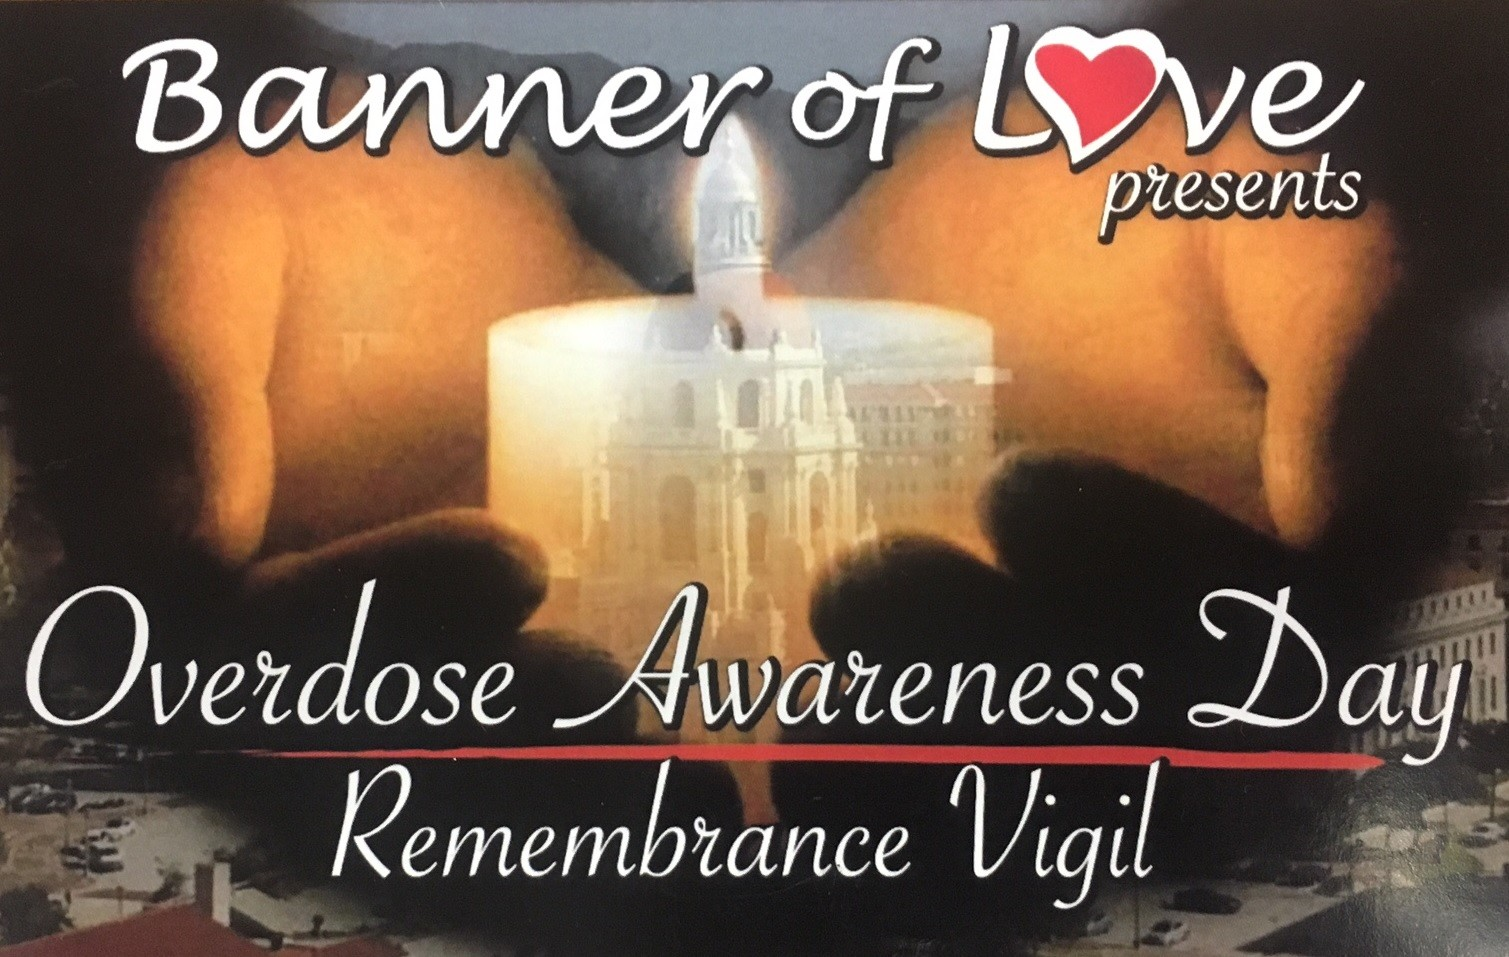 The vigil and ceremony will be held outside the State House on Aug. 31 from 6 to 9 p.m.